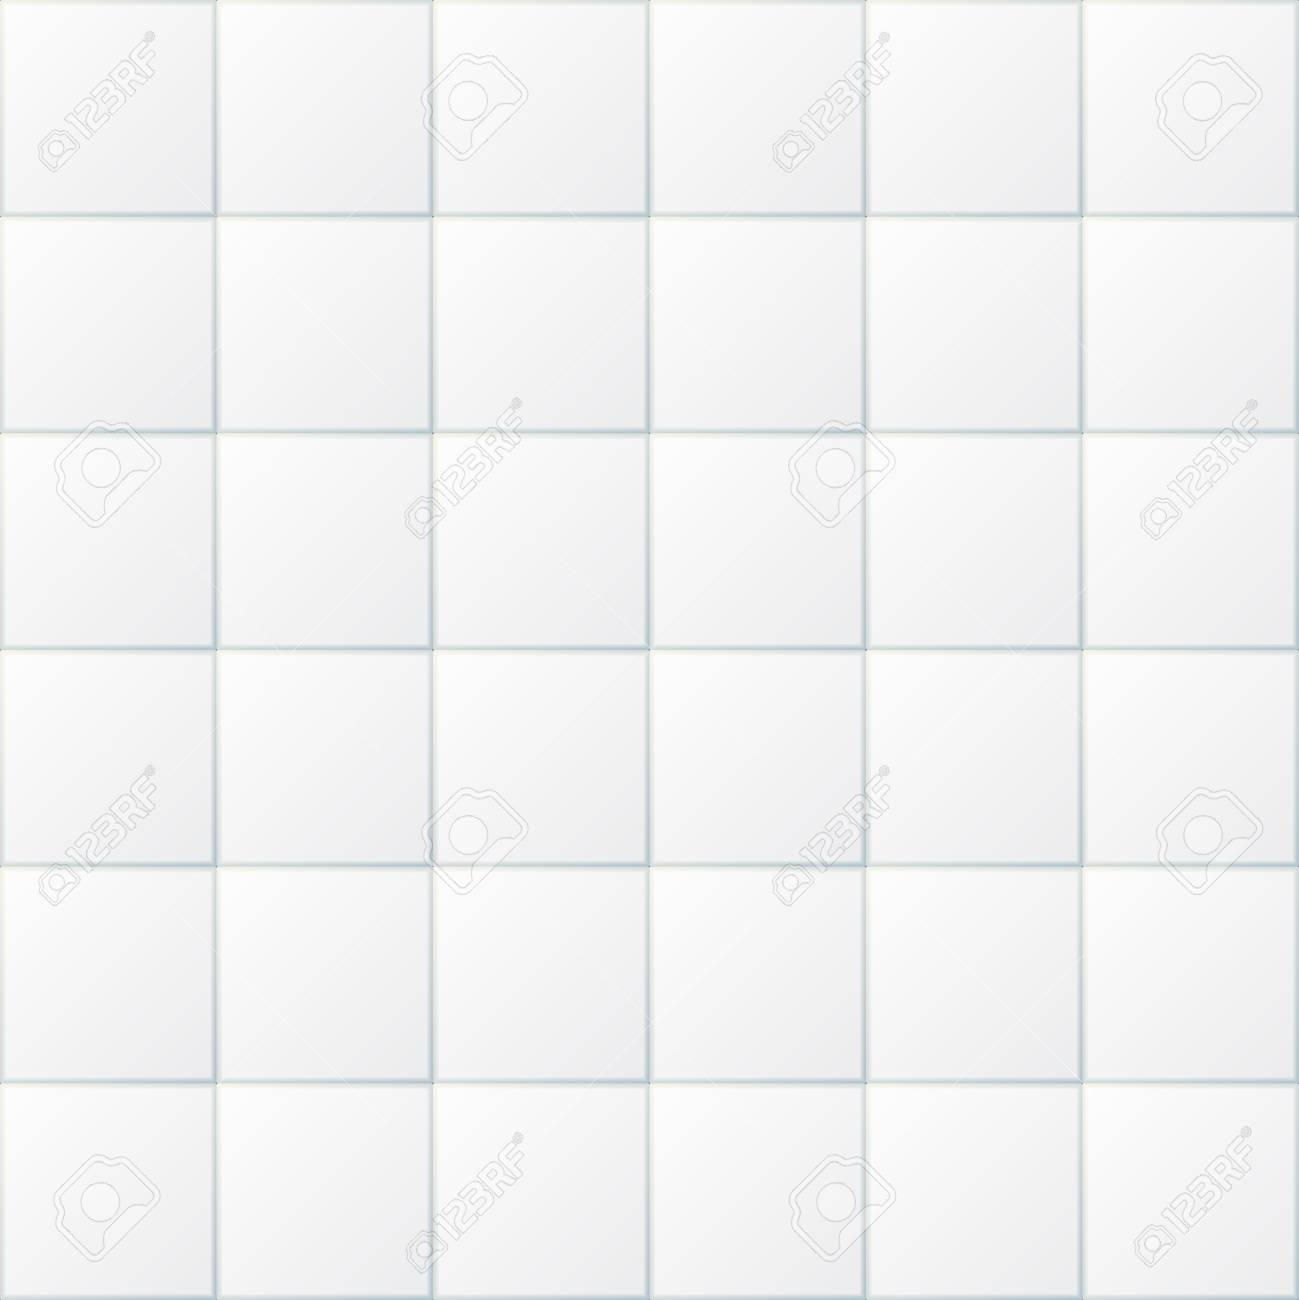 White Bathroom Tiles, Ceramic Kitchen Floor Tile Seamless Background ...